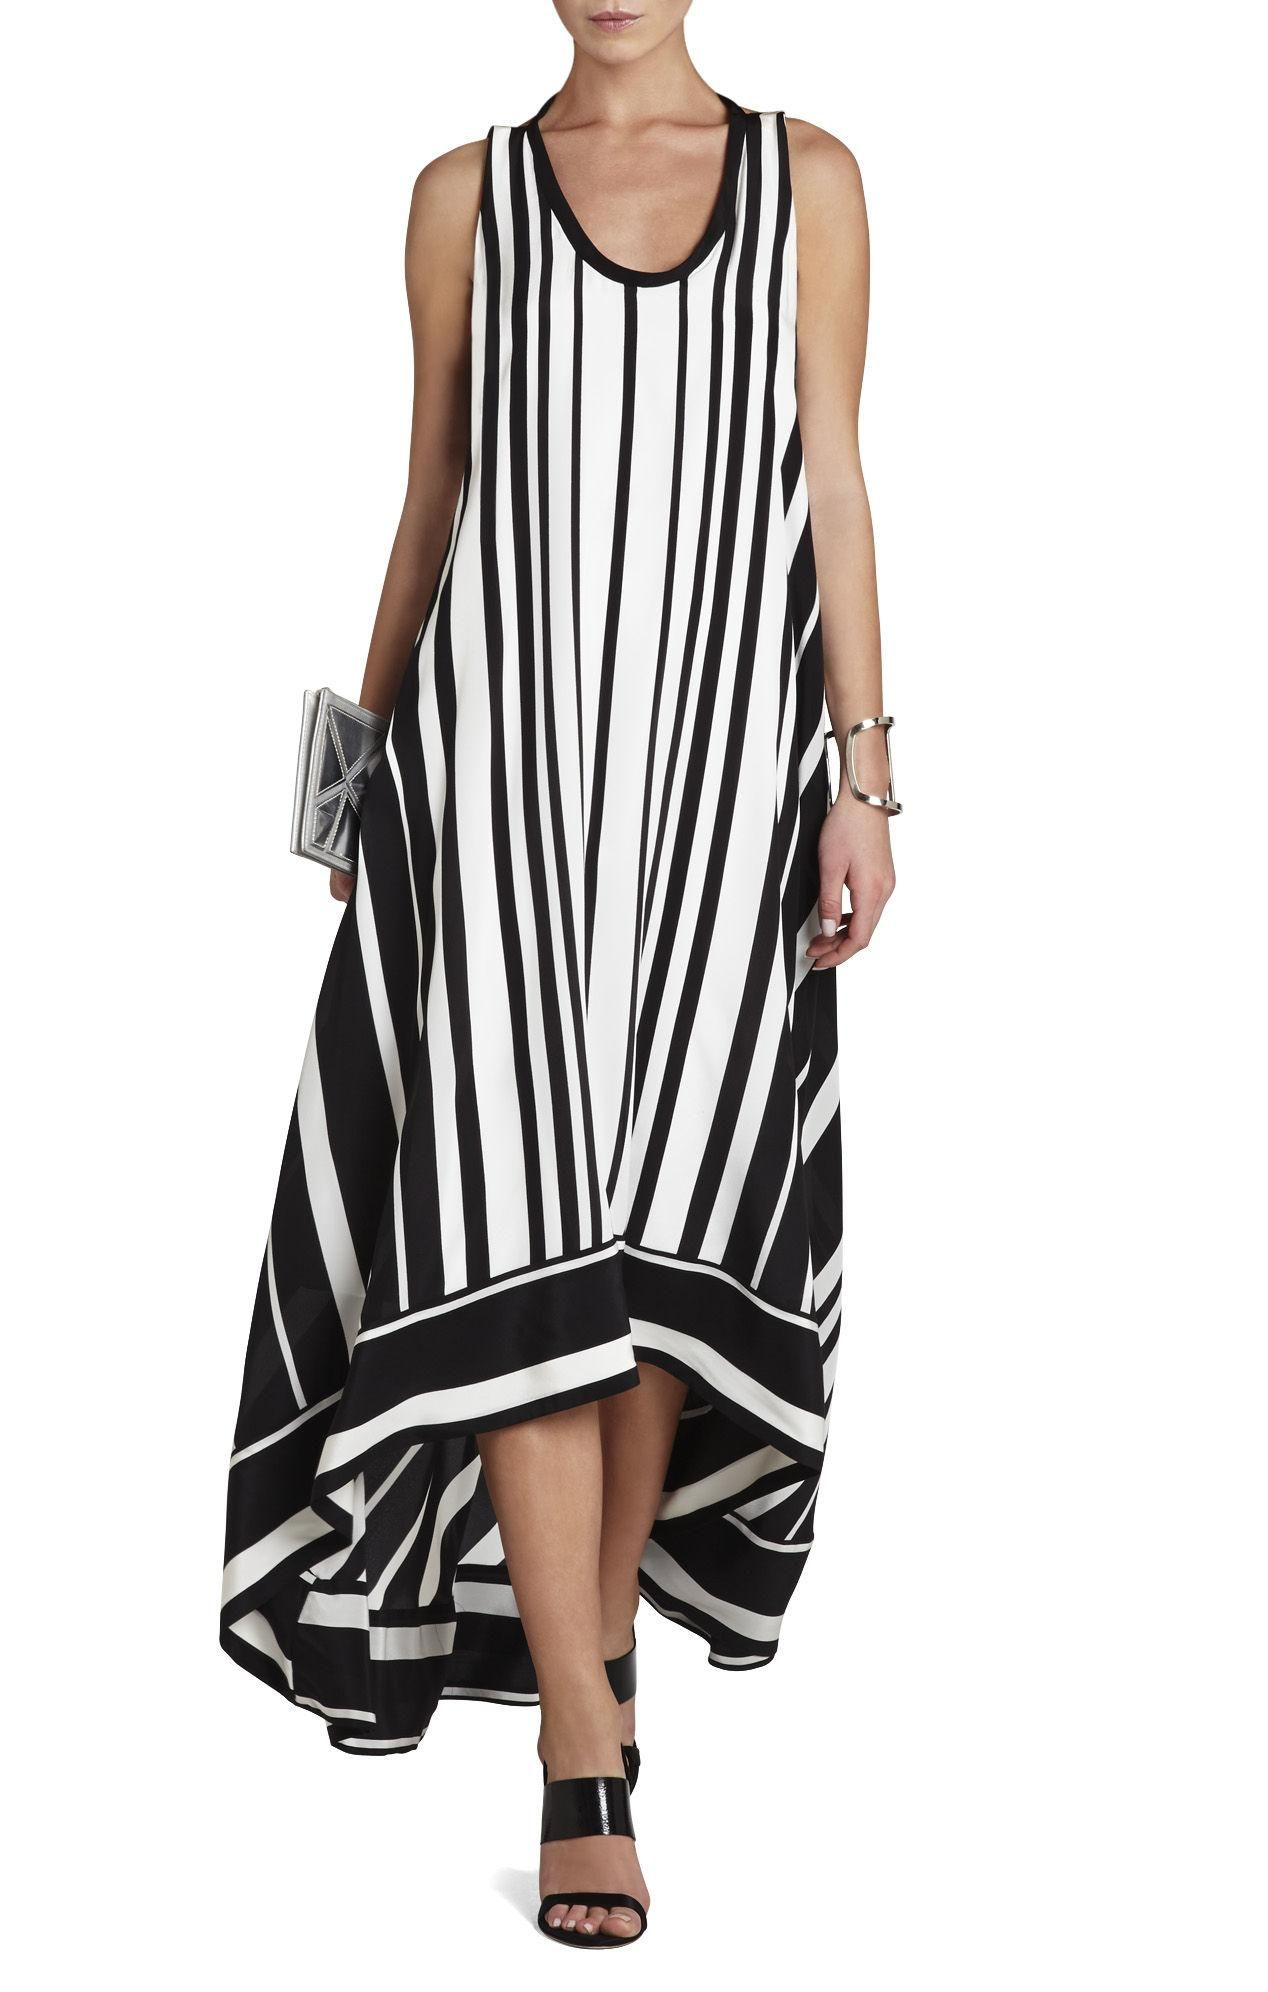 56ed13fb48 Gia Vertical-Striped Maxi Dress The dress is cute but more the shoes, not  the dress